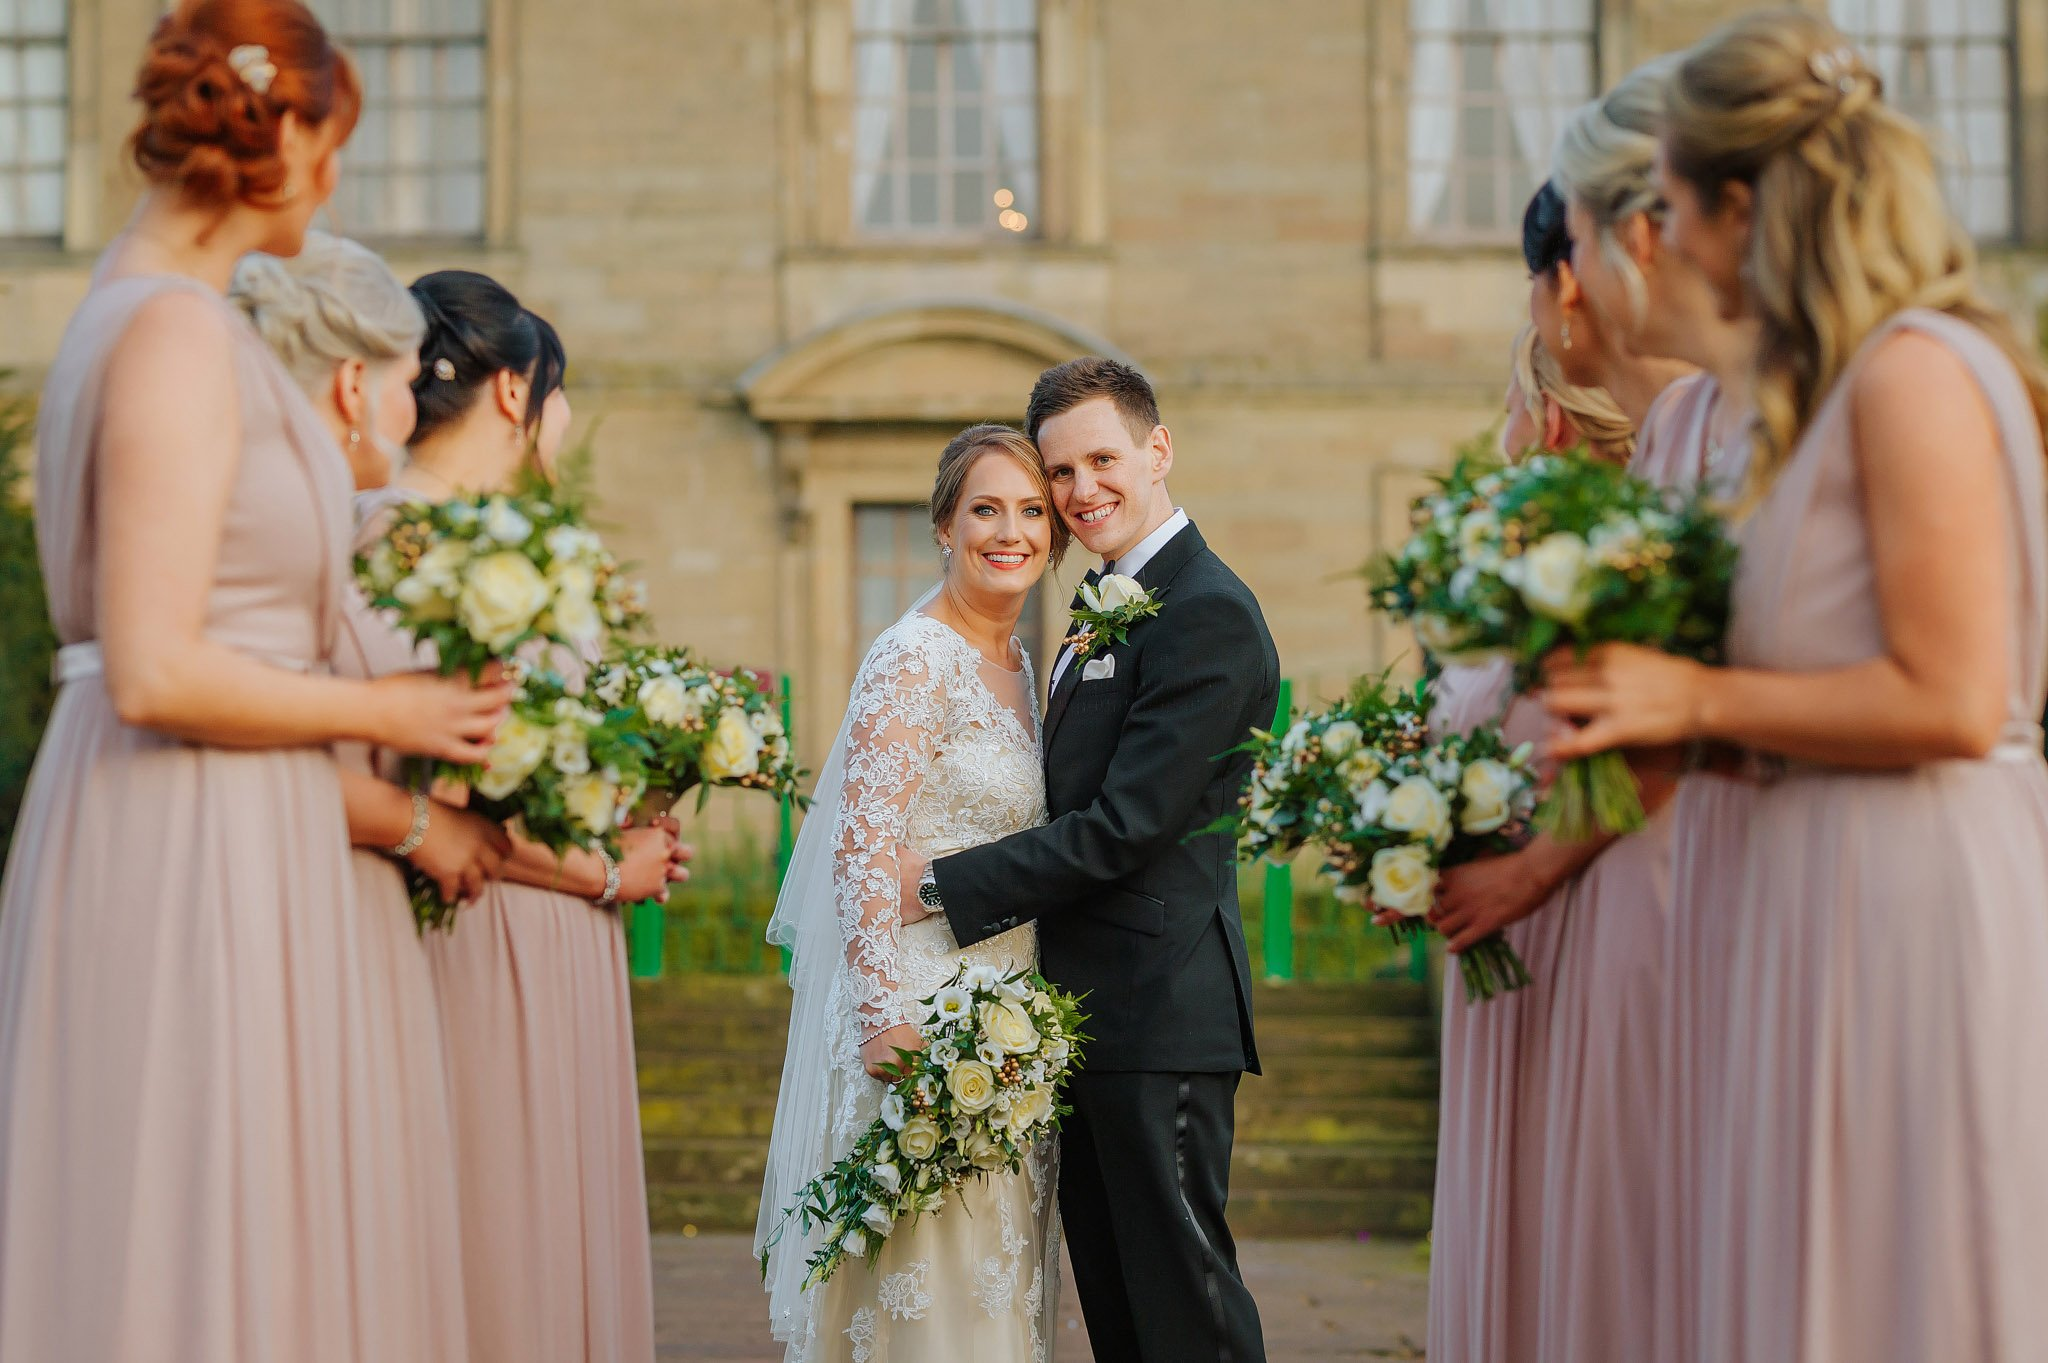 coombe abbey wedding coventry 80 - Coombe Abbey wedding in Coventry, Warwickshire - Sam + Matt